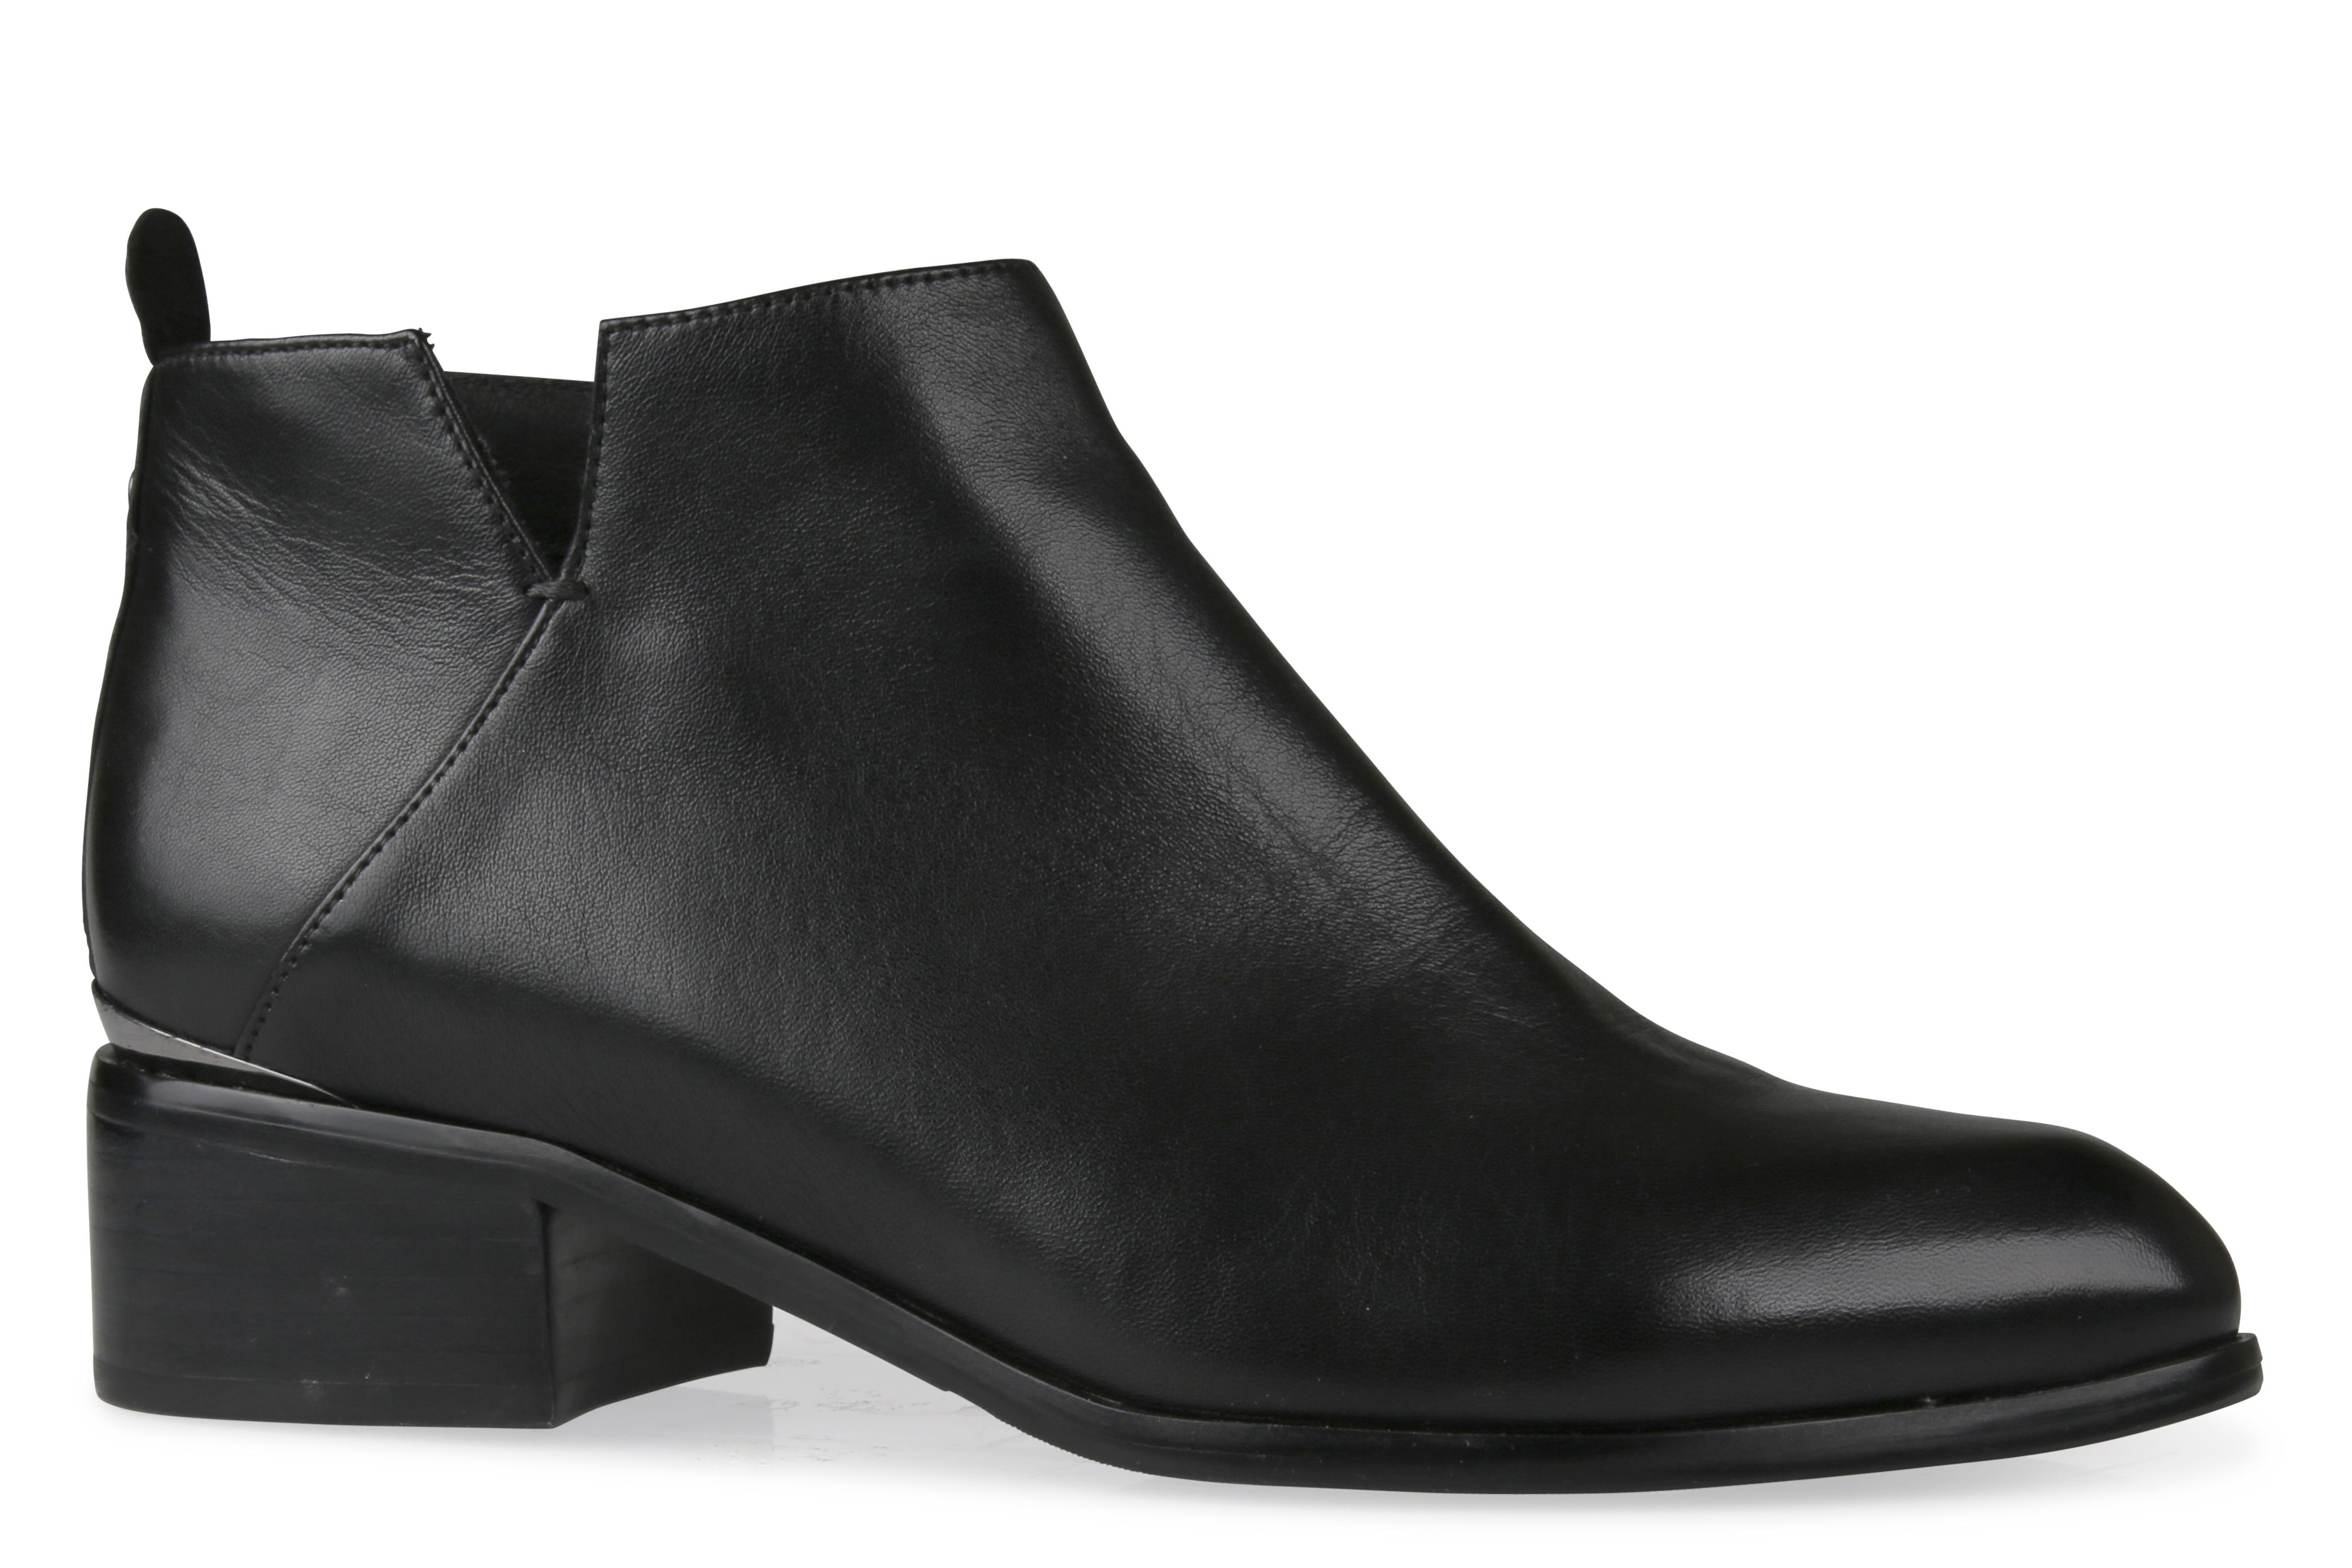 Shoe Connection Miss Sofie Madeline Black Leather Ankle Boot 229 99 Https Www Shoeconnection Co Nz Boots Leather Ankle Boots Black Leather Ankle Boots